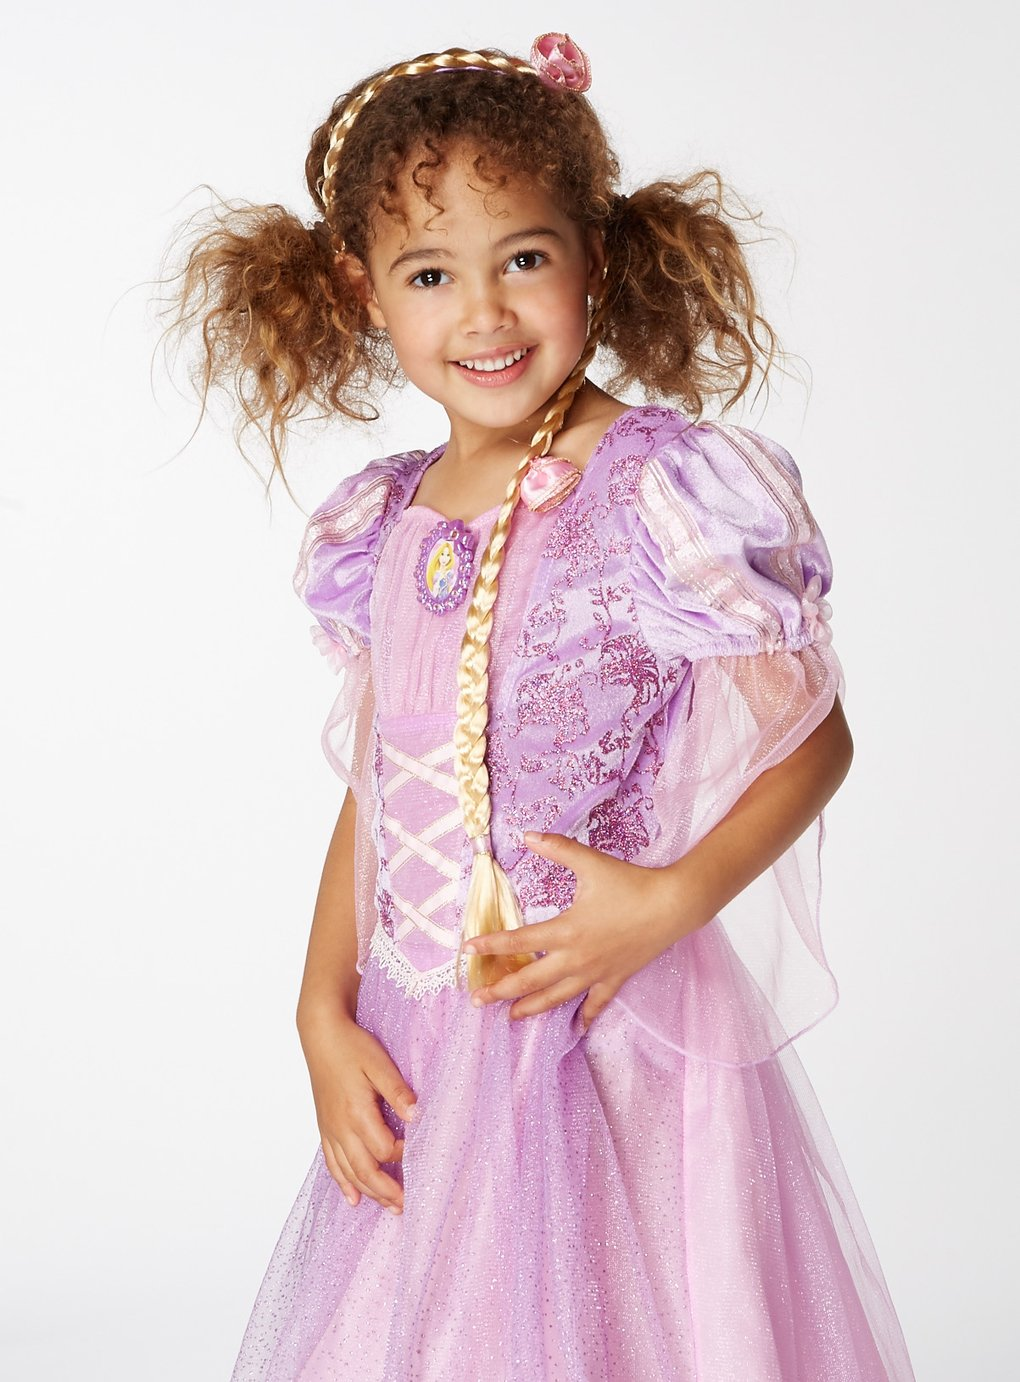 Disney Princess Rapunzel Fancy Dress Costume - 3-4 Years